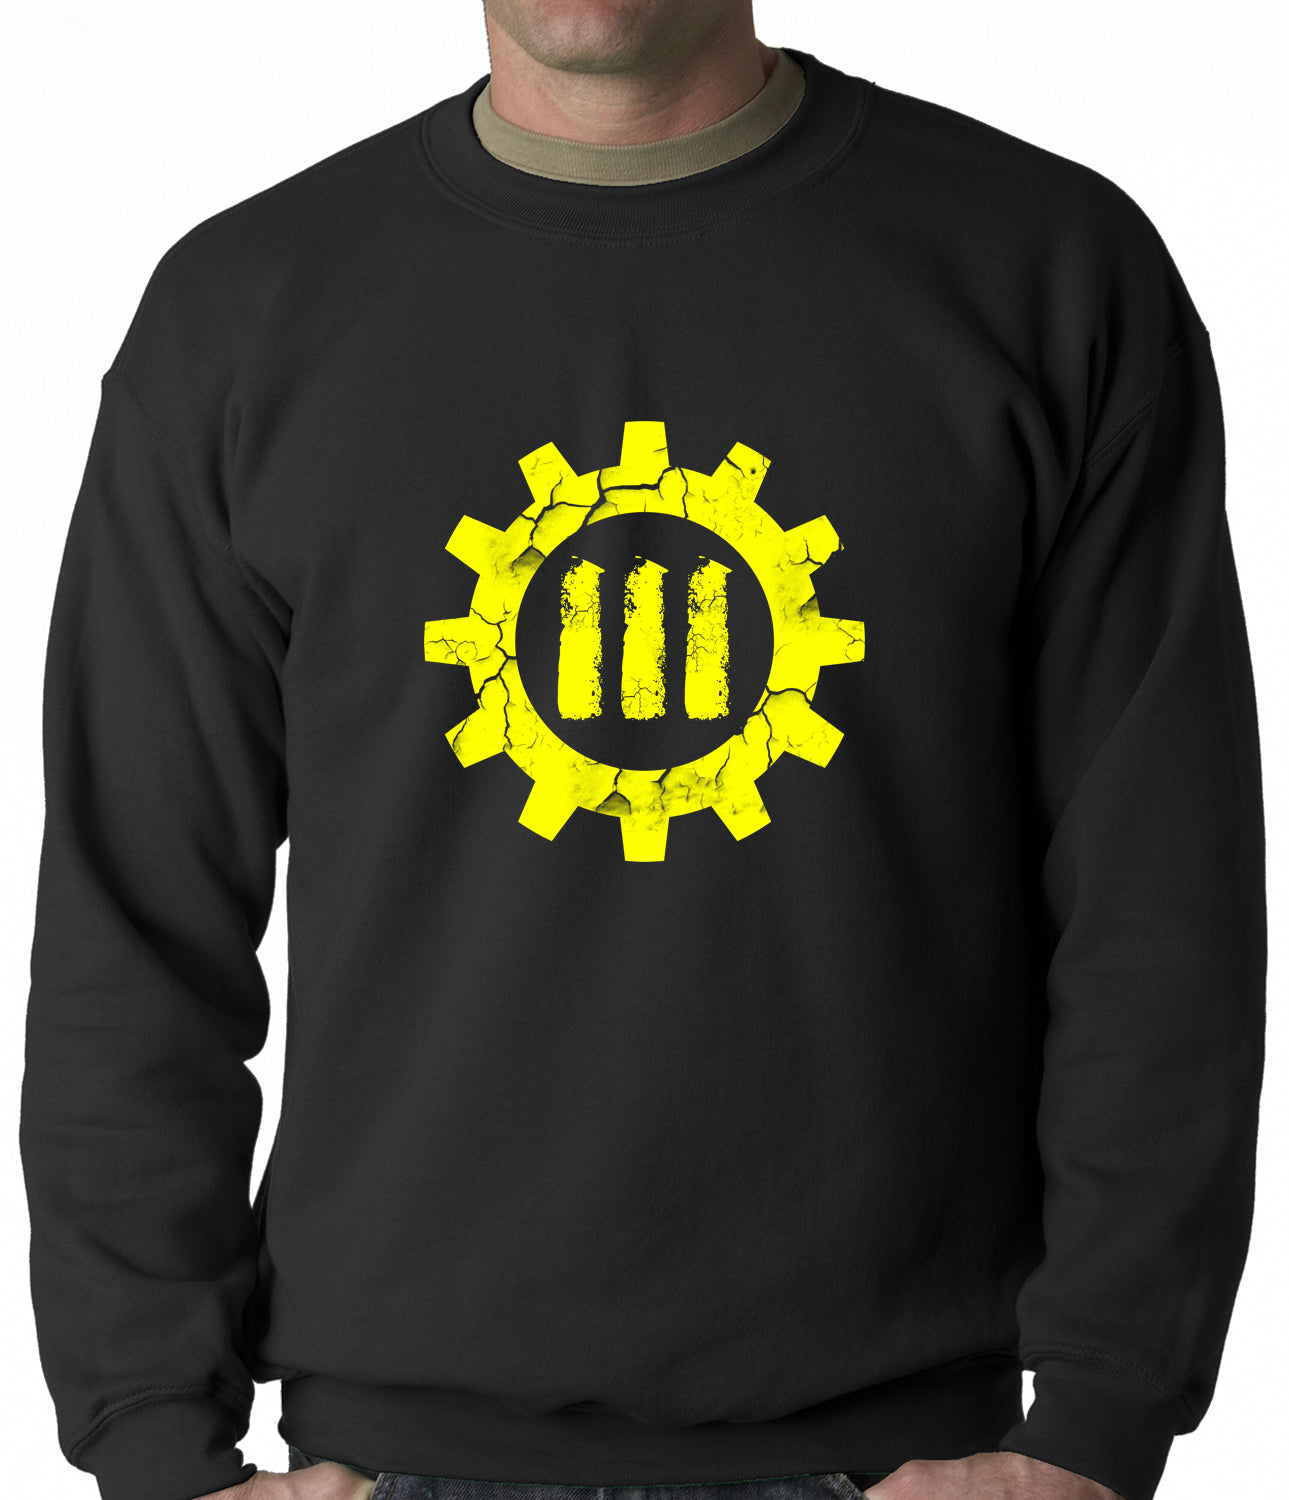 Gear 111 Adult Crewneck